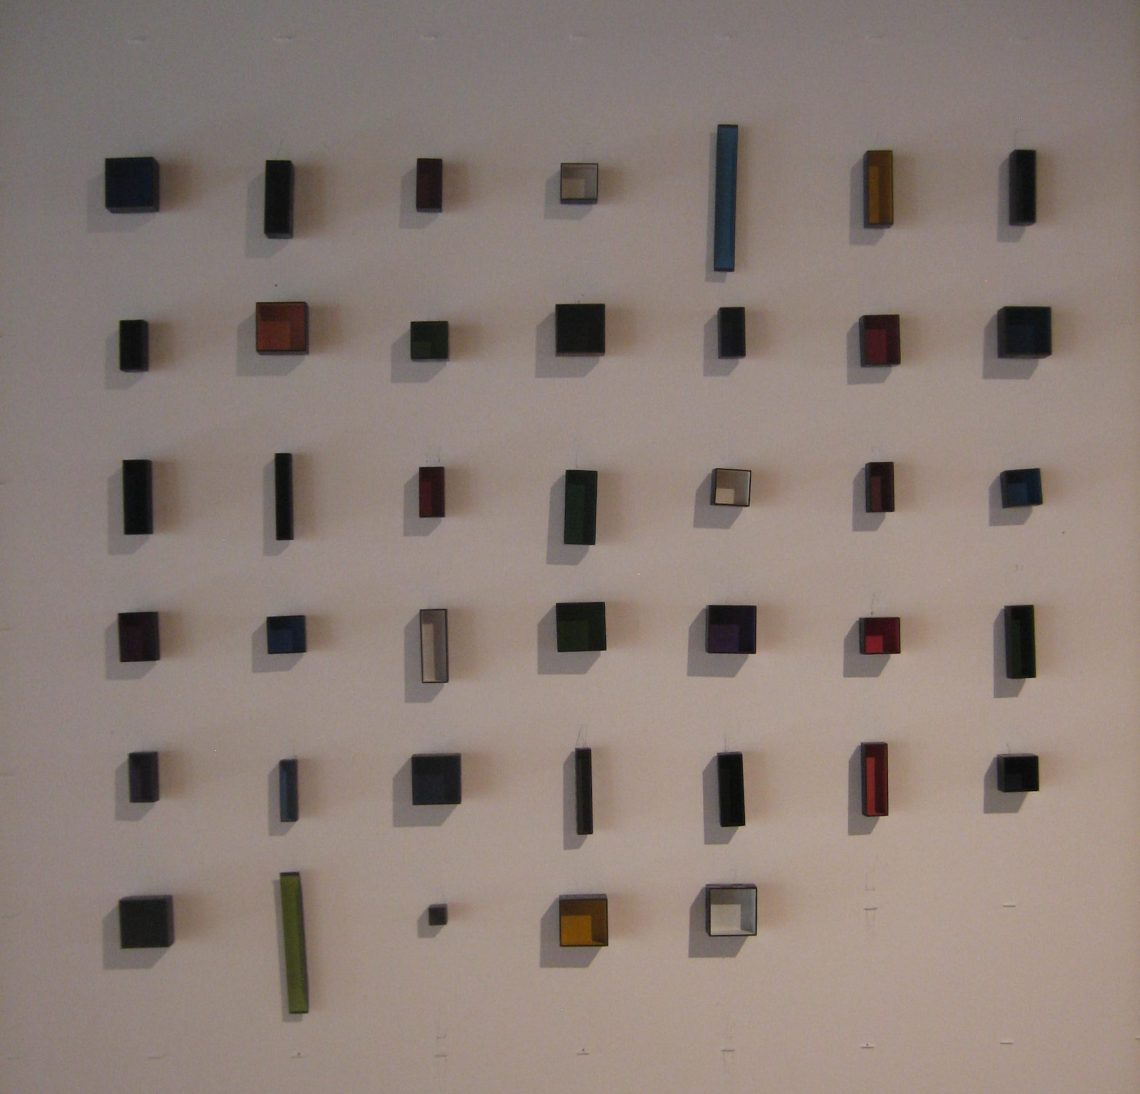 Tore Svensson, Box, broches, 2009, Galerie Marzee, 2018. Foto Esther Doornbusch, juli 2018, CC BY 4.0